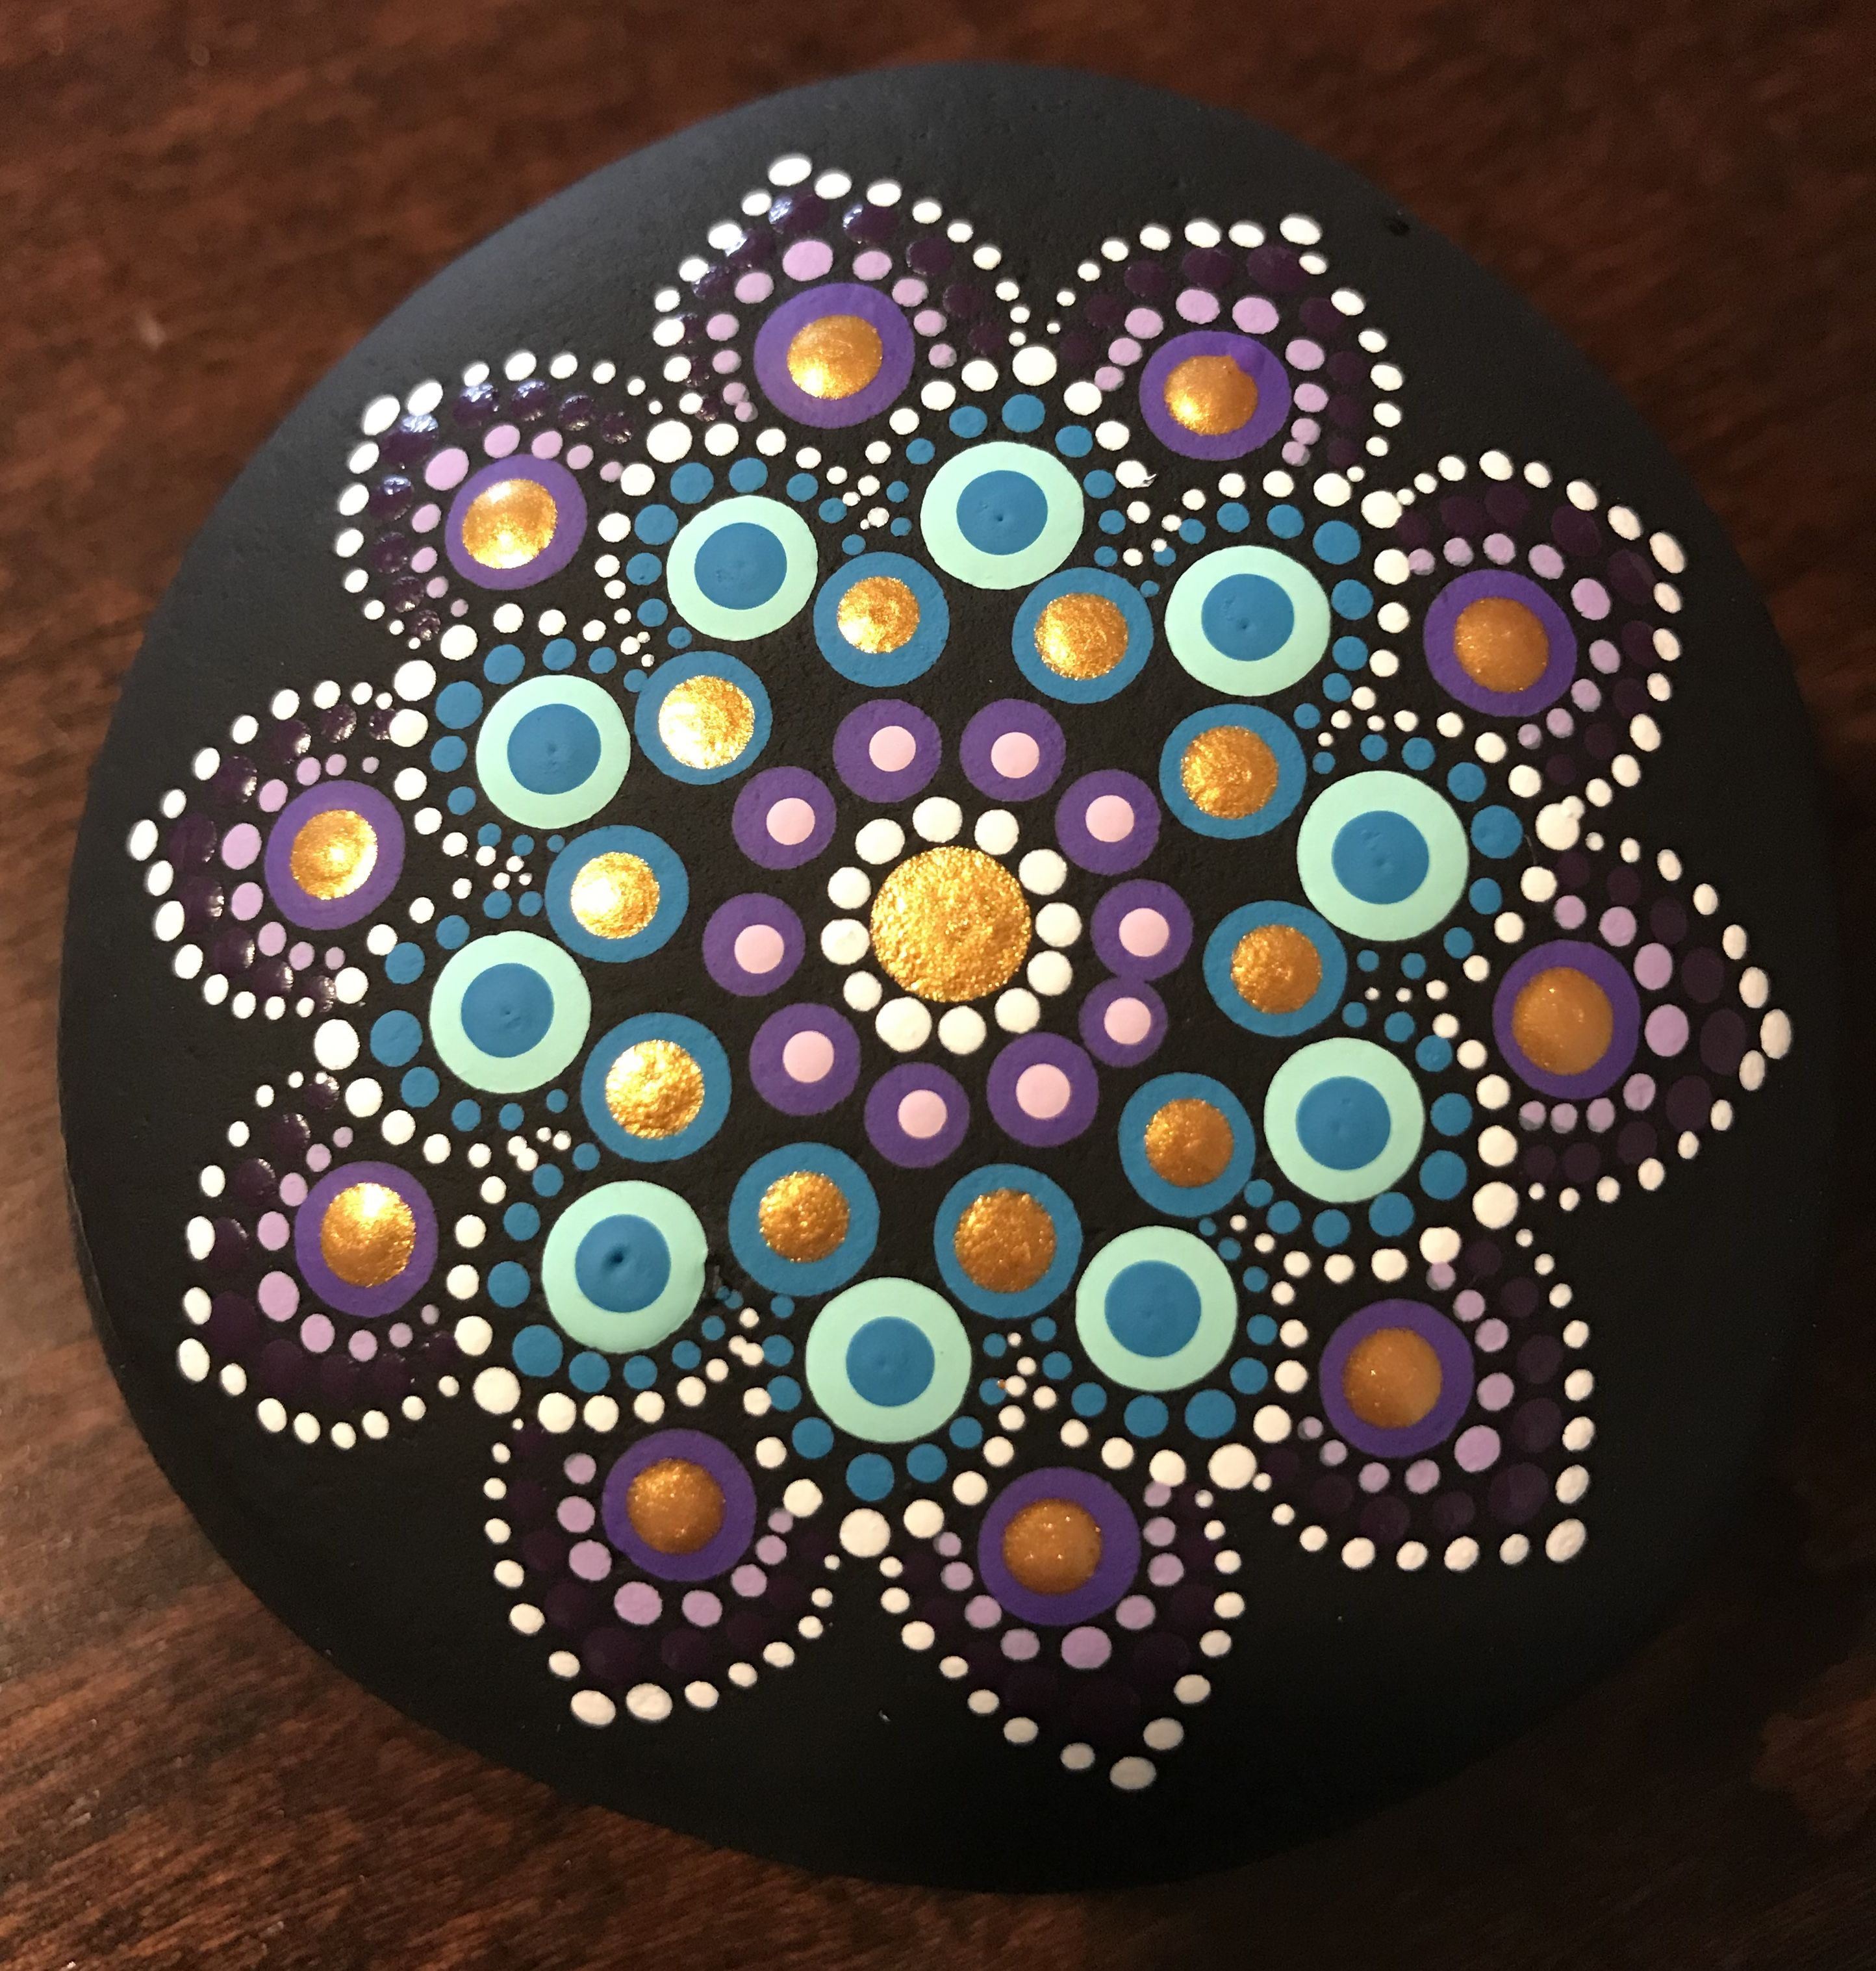 Stein Fliesen Bemalen Metallic Dot Painted Mandala Rock By Rachel Puntillismo